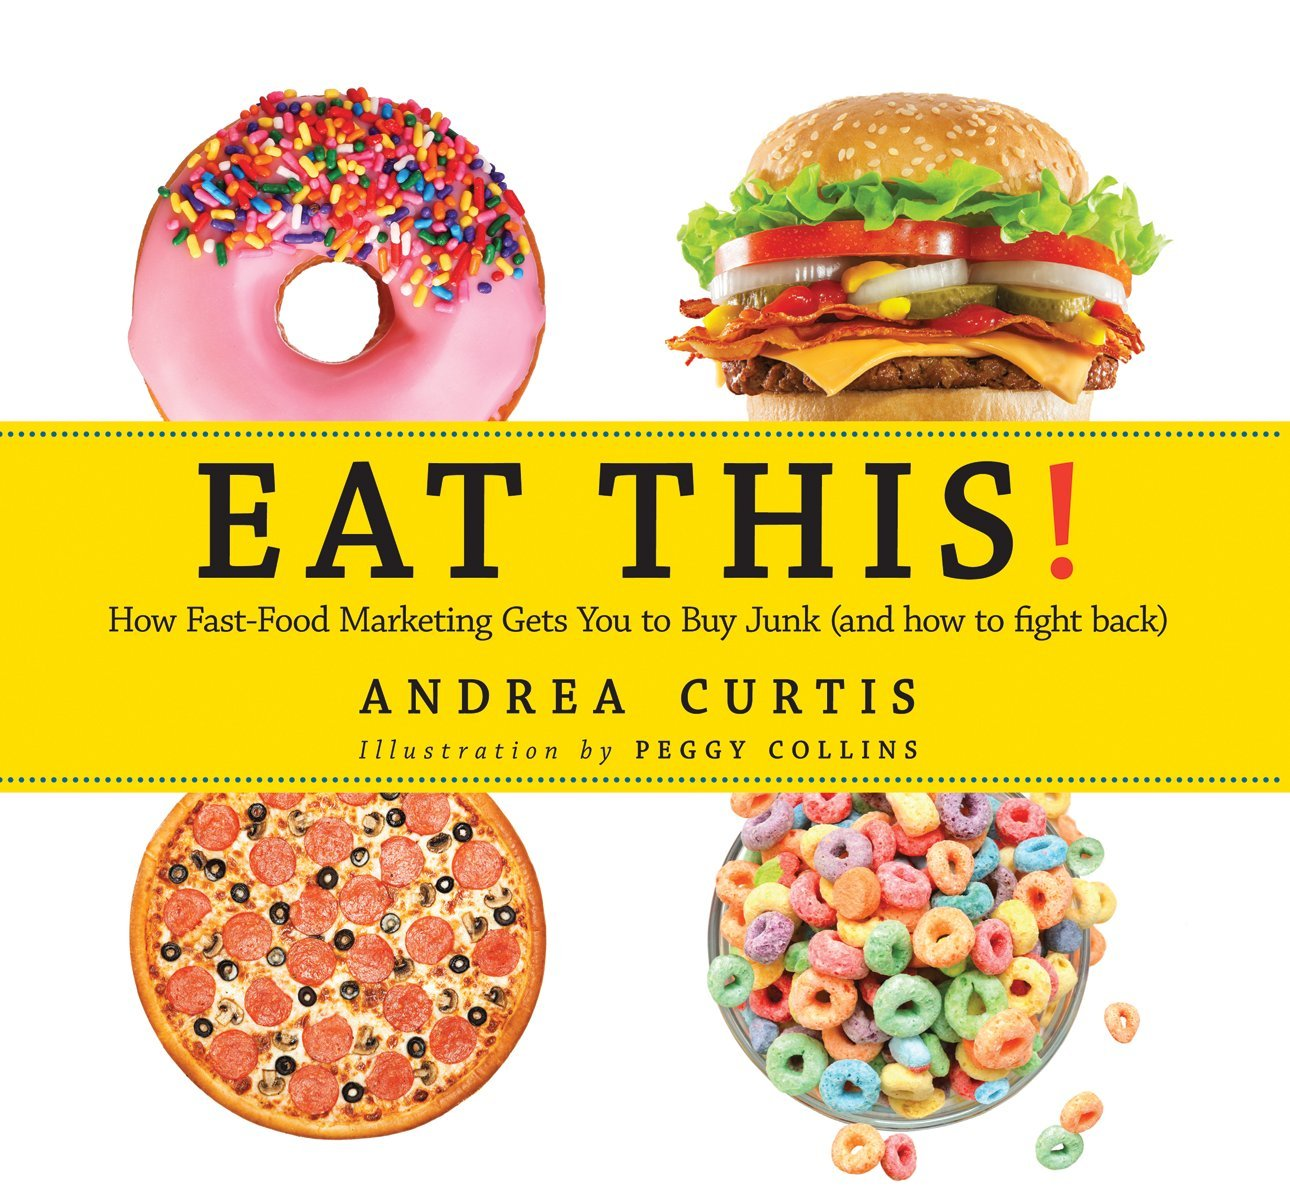 Eat This!: How Fast Food Marketing Gets You to Buy Junk (And How To Fight Back) pdf